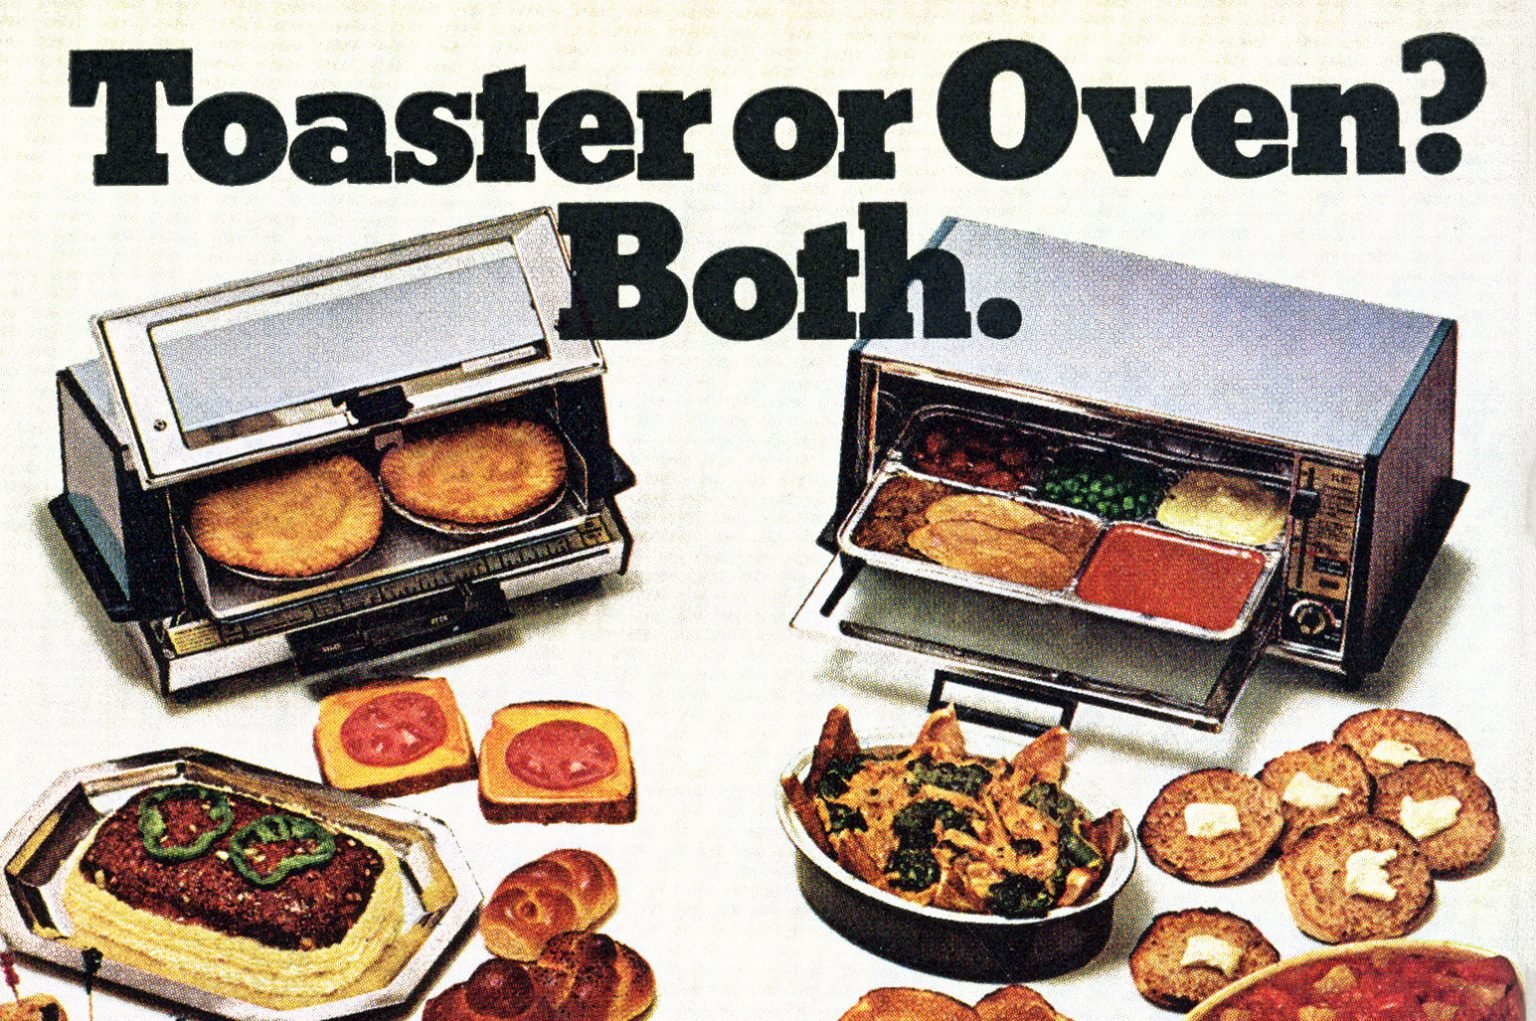 Vintage toaster ovens The exciting new kitchen appliances that debuted in the 1950s